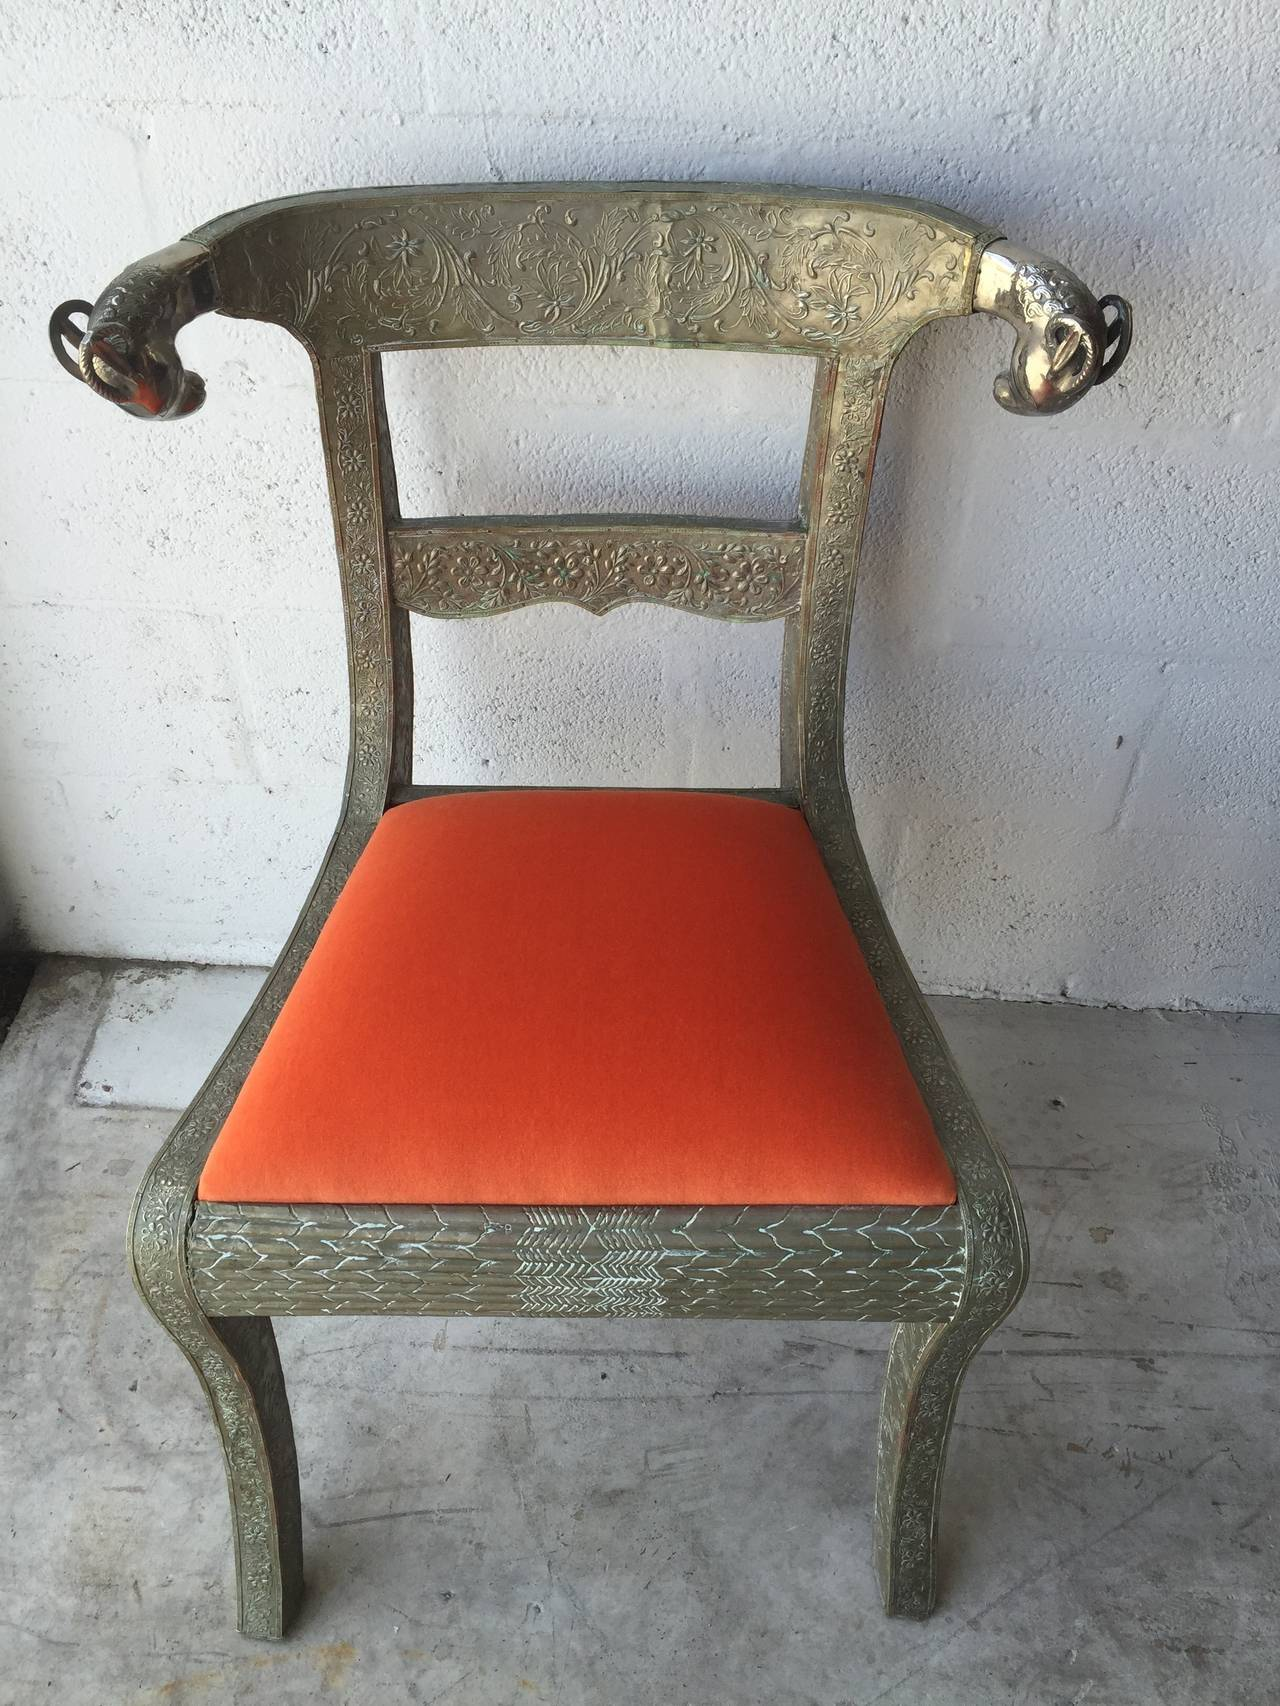 Pressed Tin Ram Head Chair At 1stdibs